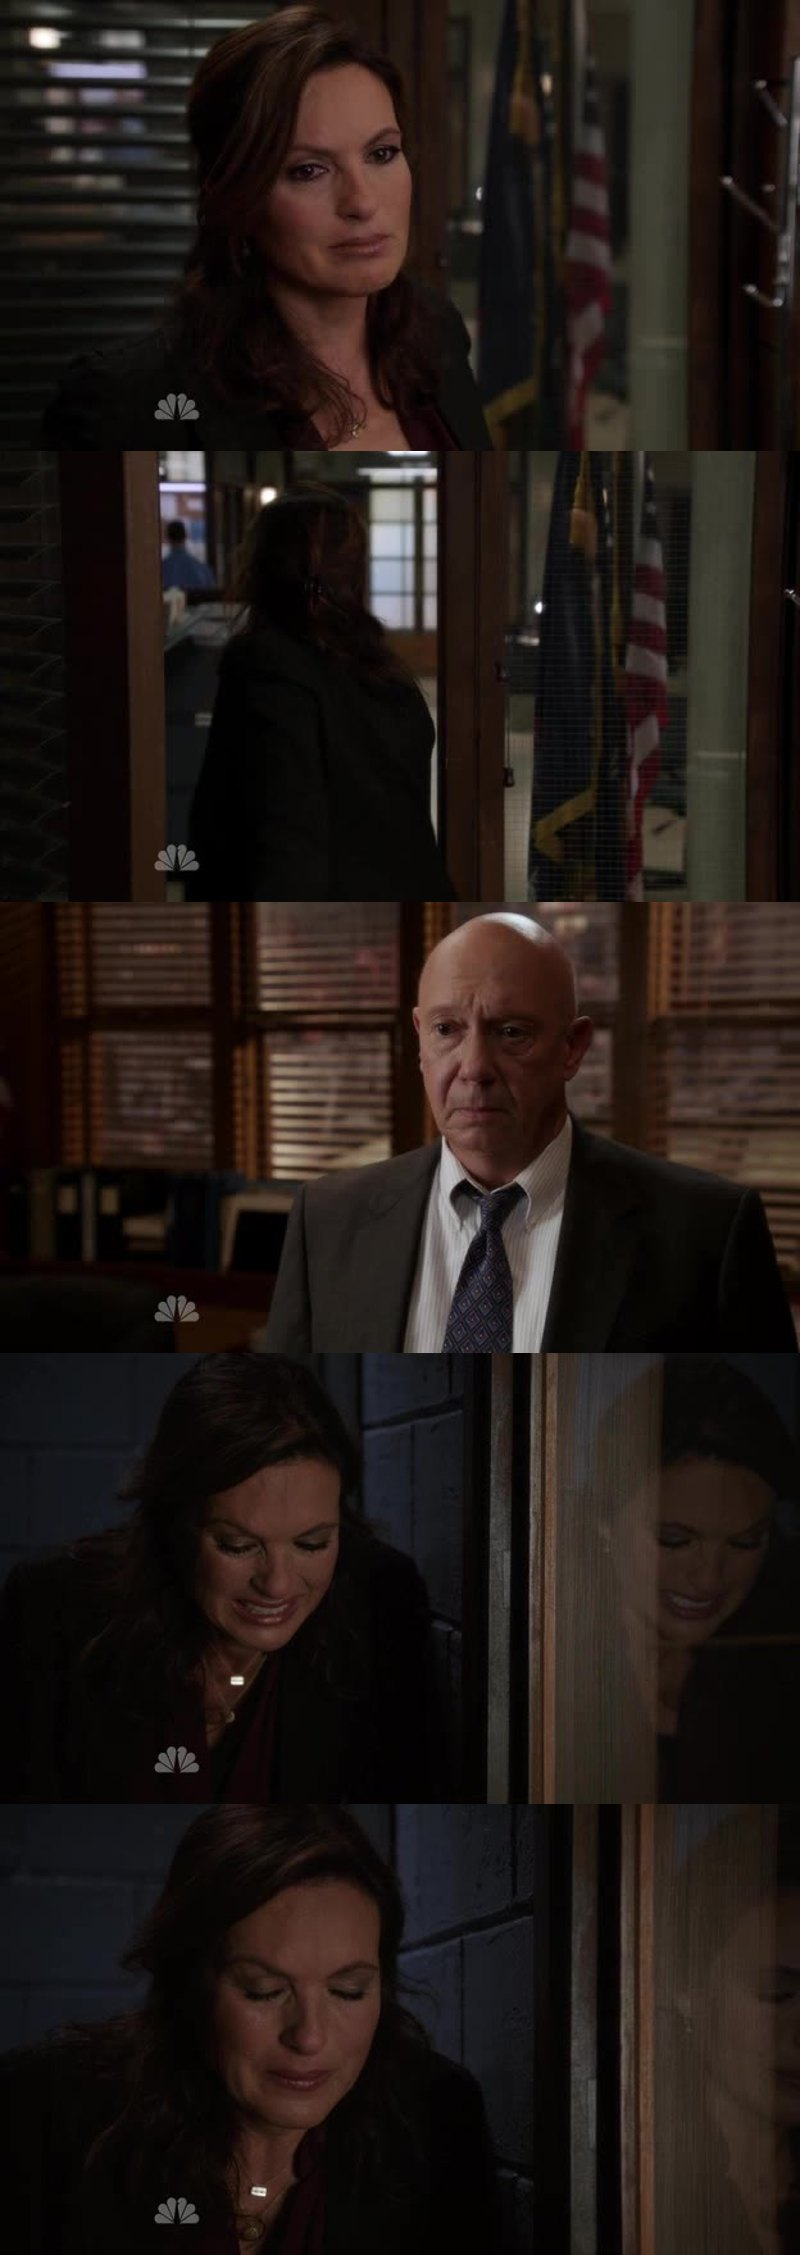 Law and order s13e01 persian